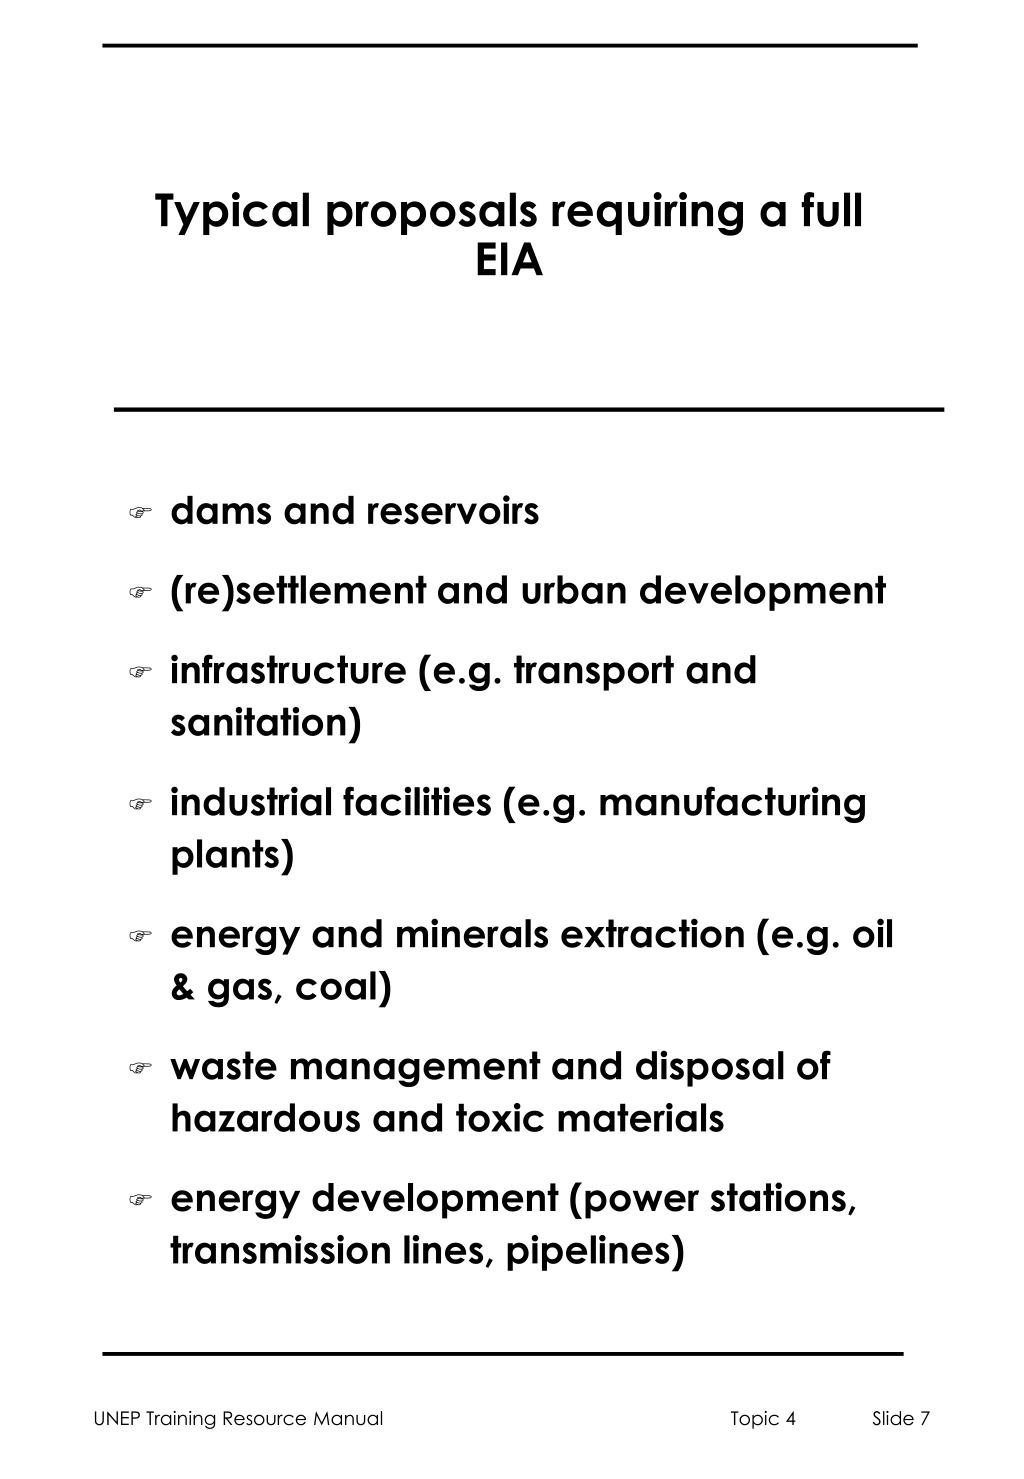 Typical proposals requiring a full EIA